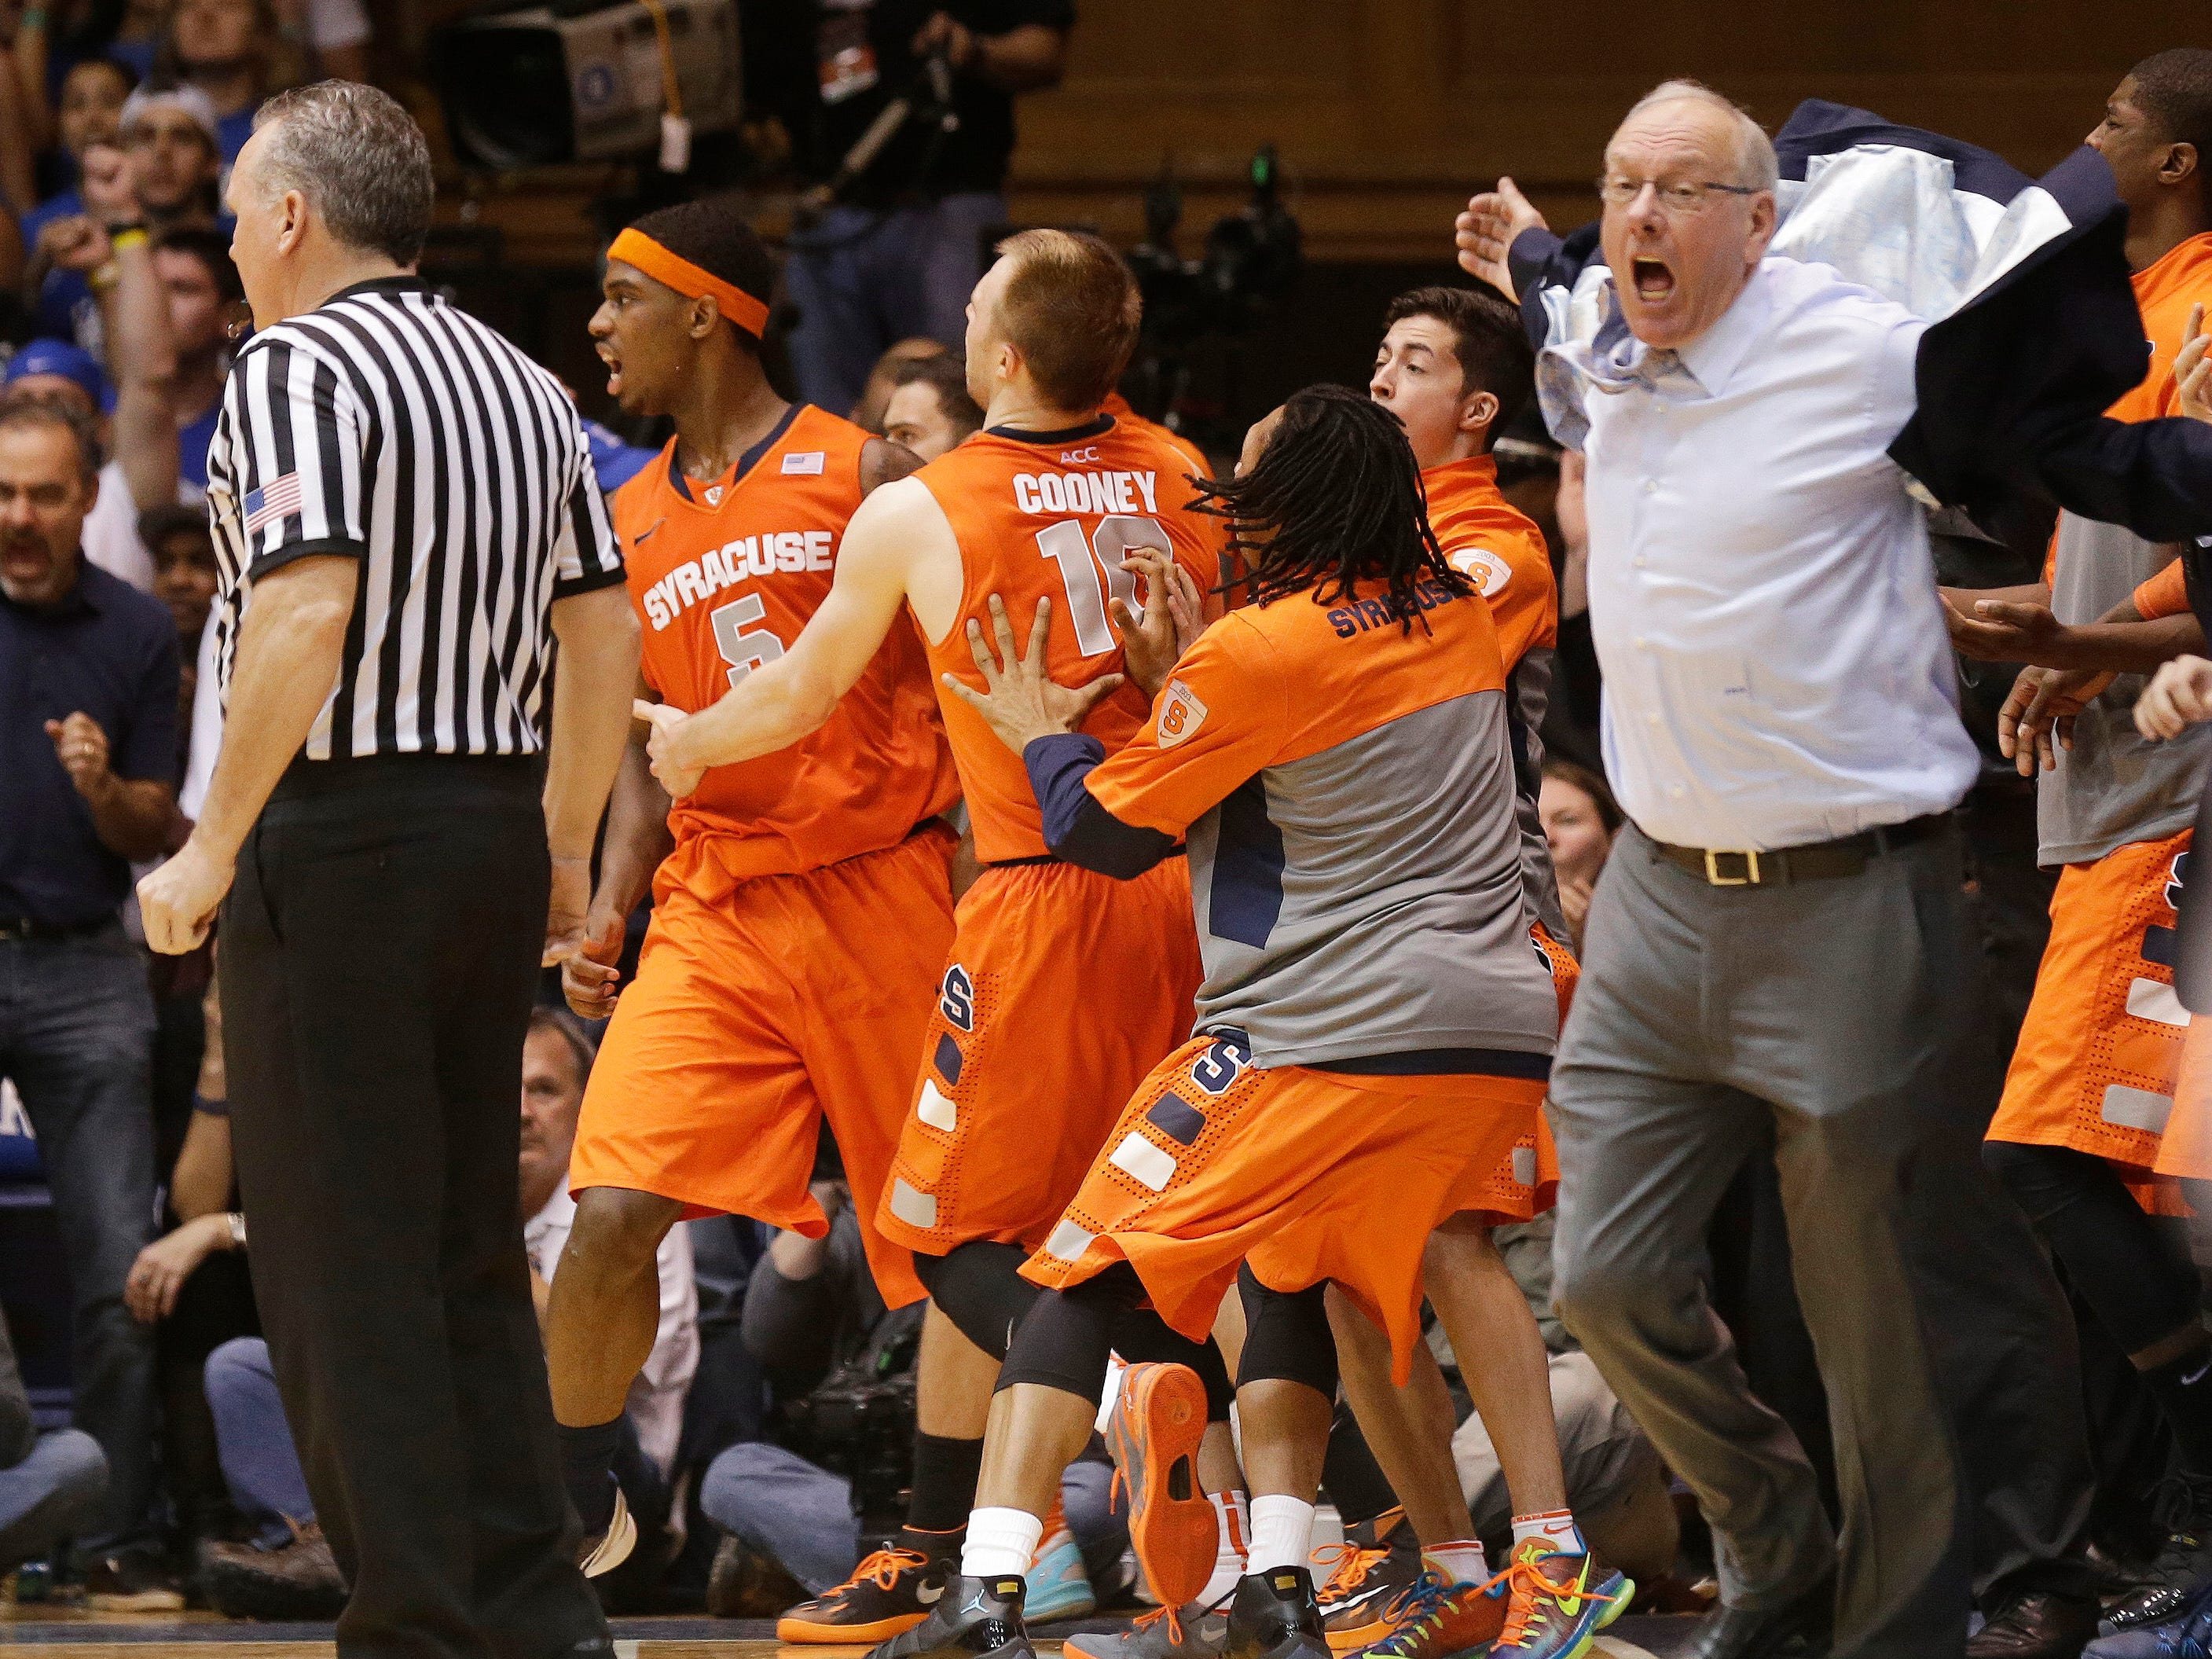 2014: Syracuse coach Jim Boeheim, right, and players react to an official's call late in the second half of an NCAA college basketball game against Duke in Durham, N.C., Saturday, Feb. 22, 2014. Duke won 66-60. (AP Photo/Gerry Broome)